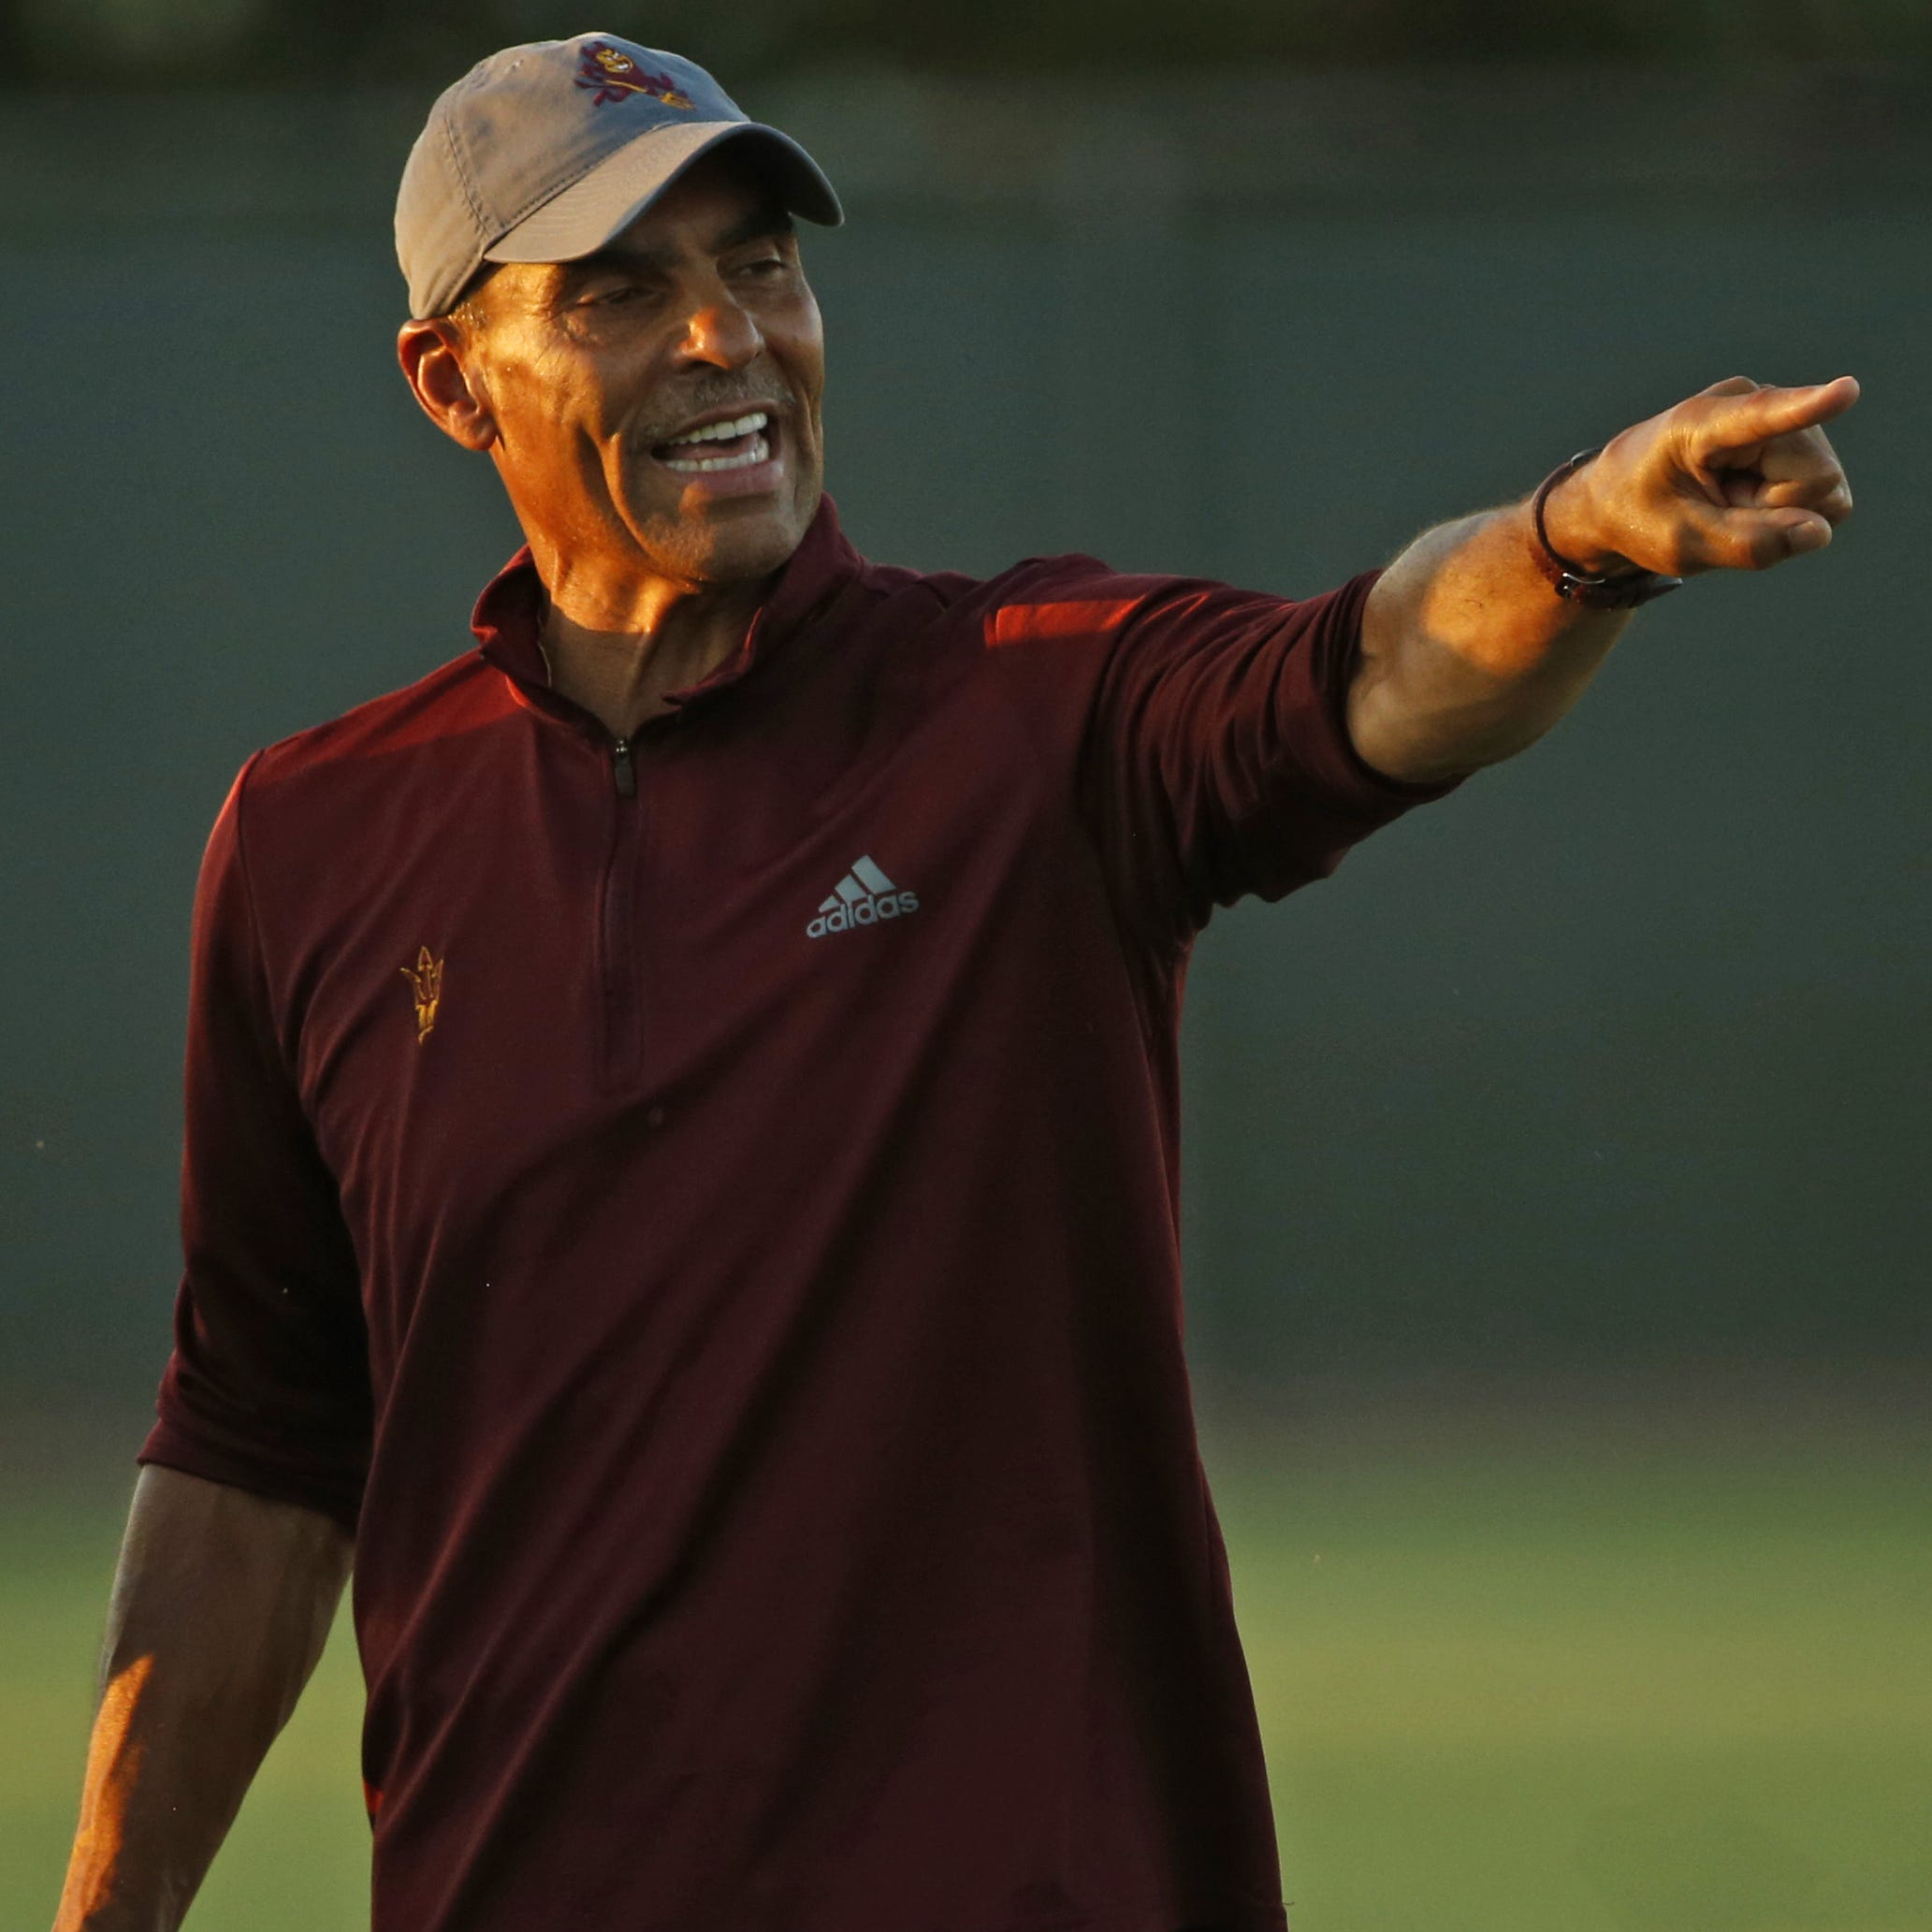 Making every minute count: How Herm Edwards spends an ASU football practice